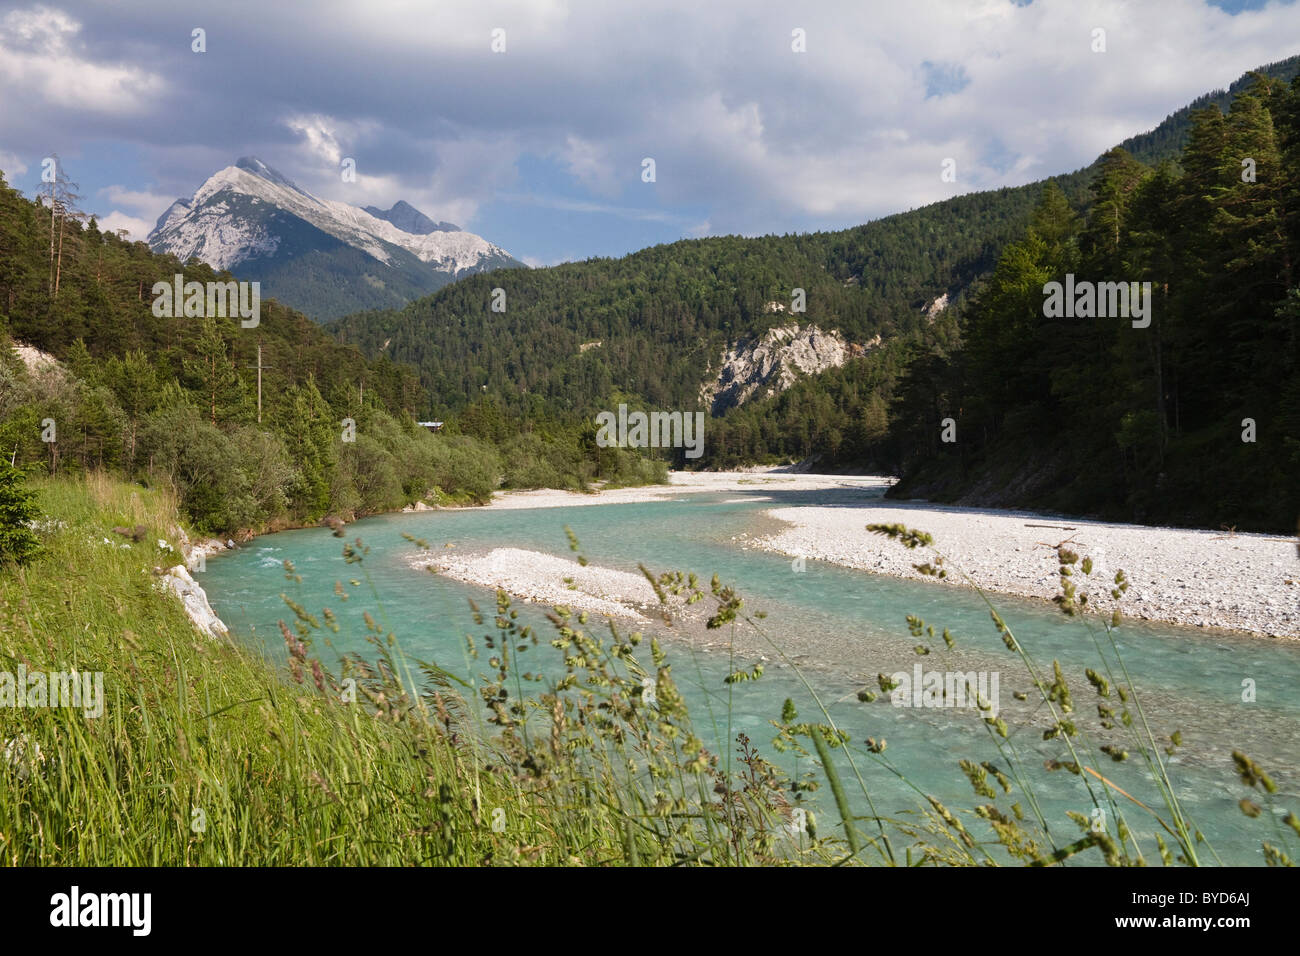 Upper reaches of the Isar River in Hinterautal valley, Karwendel Mountains, Alps, Tyrol, Austria, Europe - Stock Image